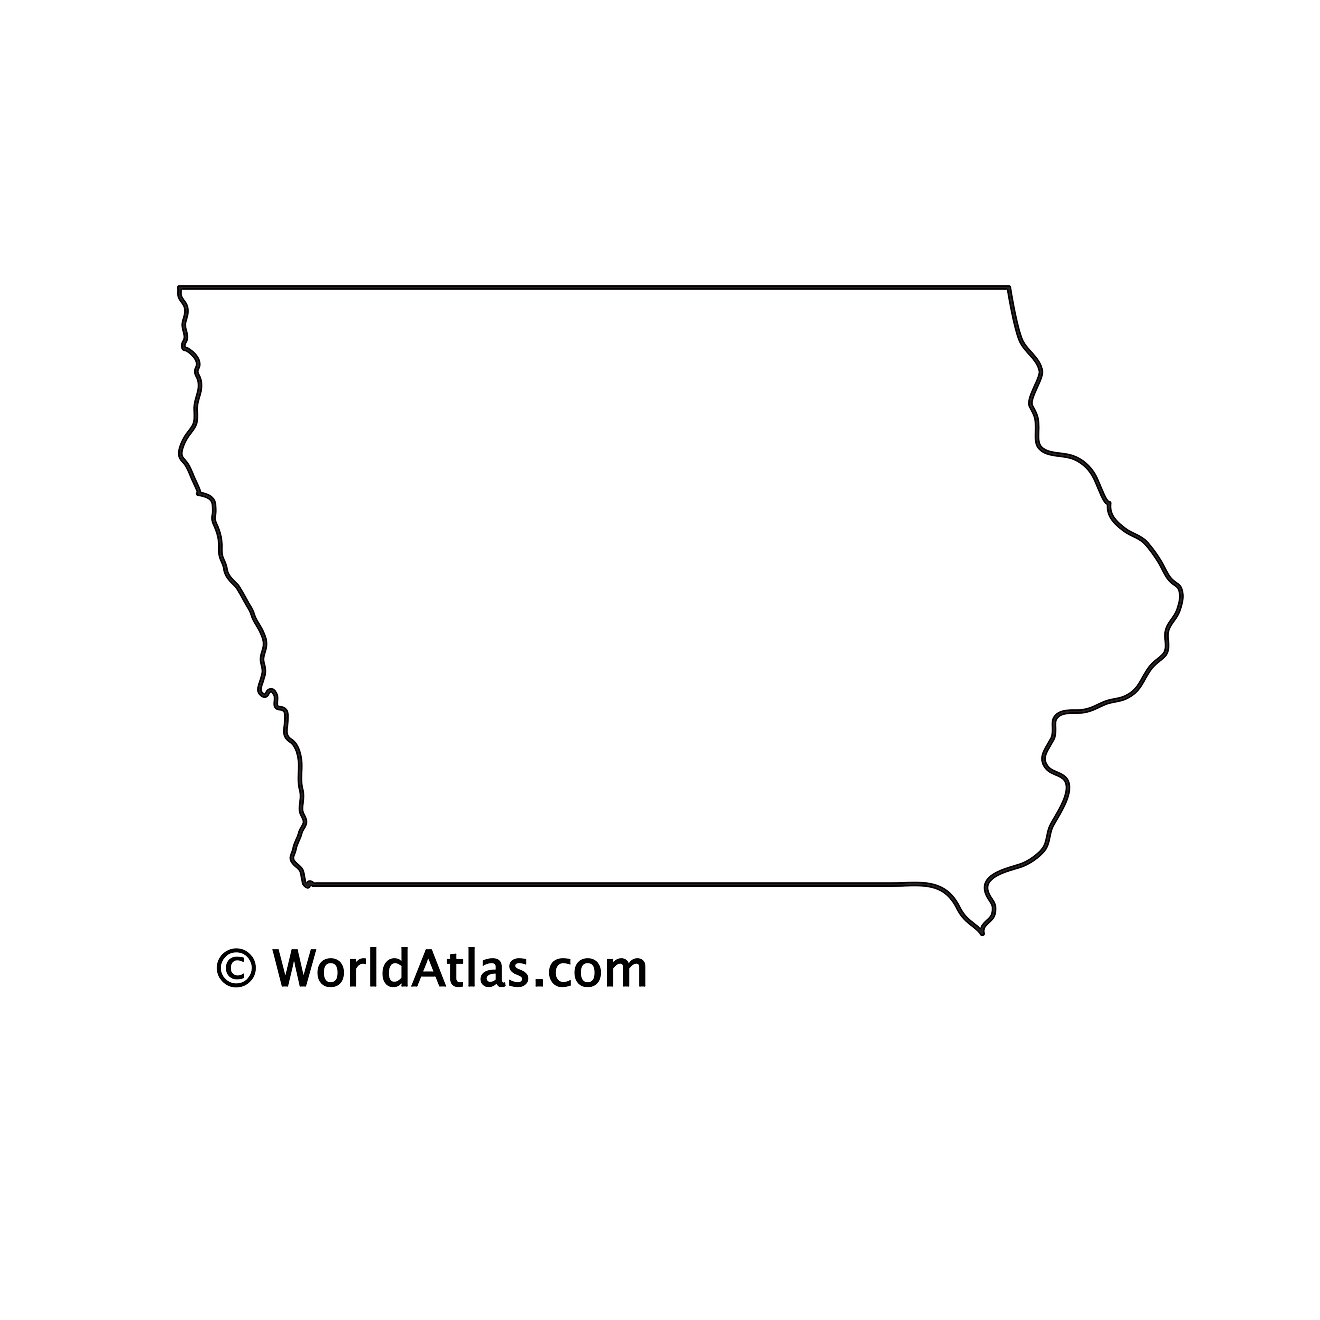 Blank Outline Map of Iowa